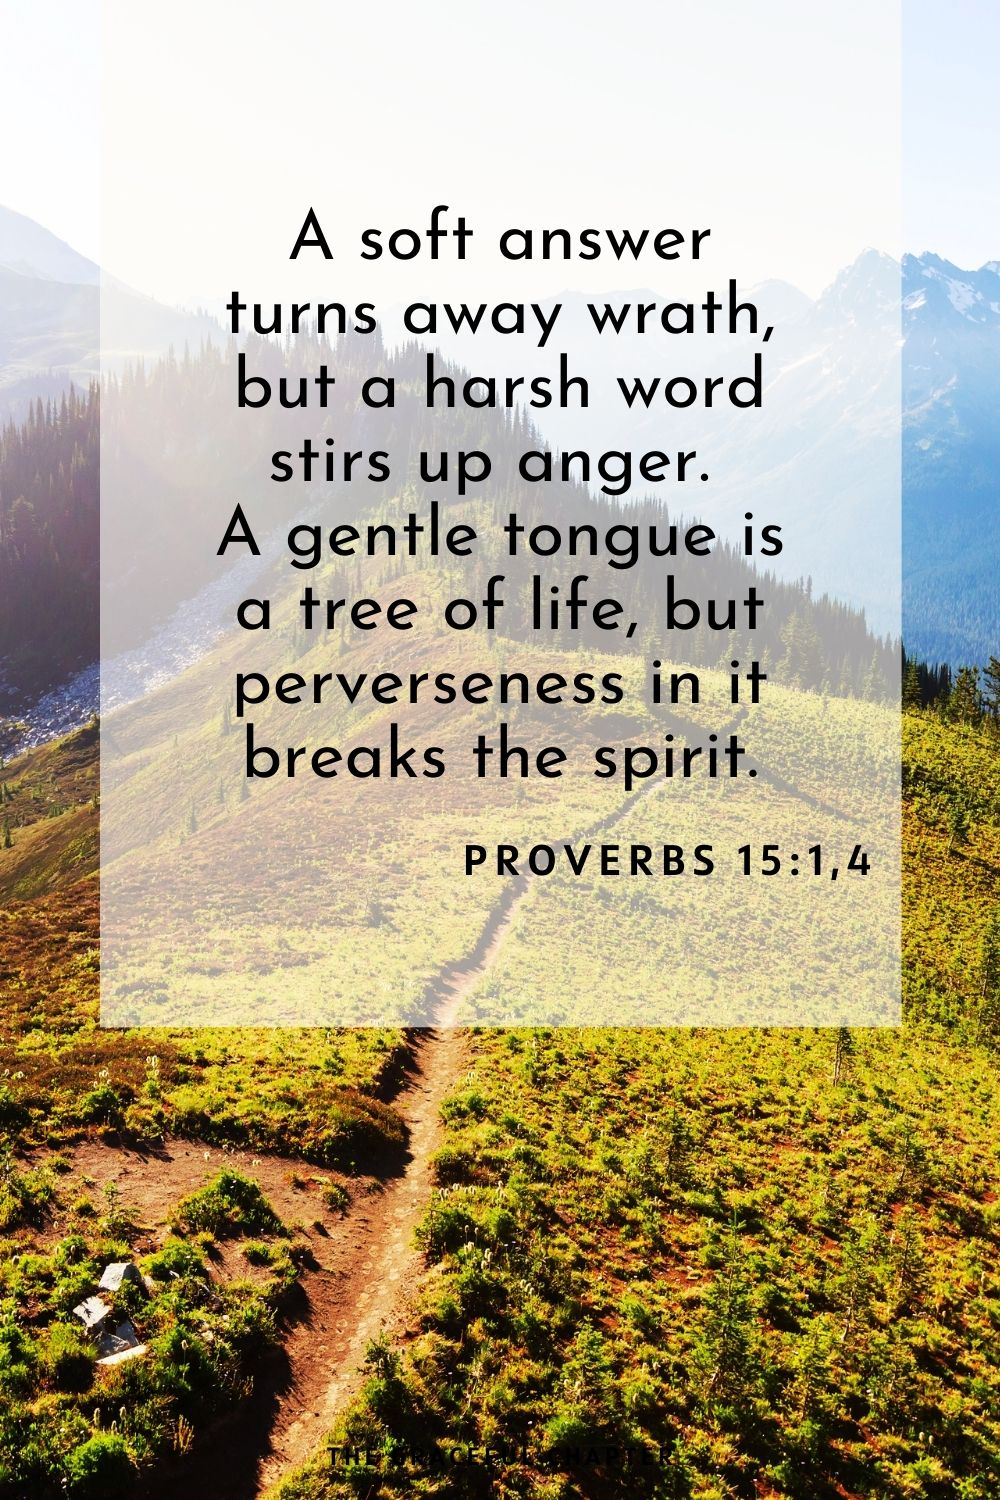 A soft answer turns away wrath, but a harsh word stirs up anger. A gentle tongue is a tree of life, but perverseness in it breaks the spirit. Proverbs 15:1,4